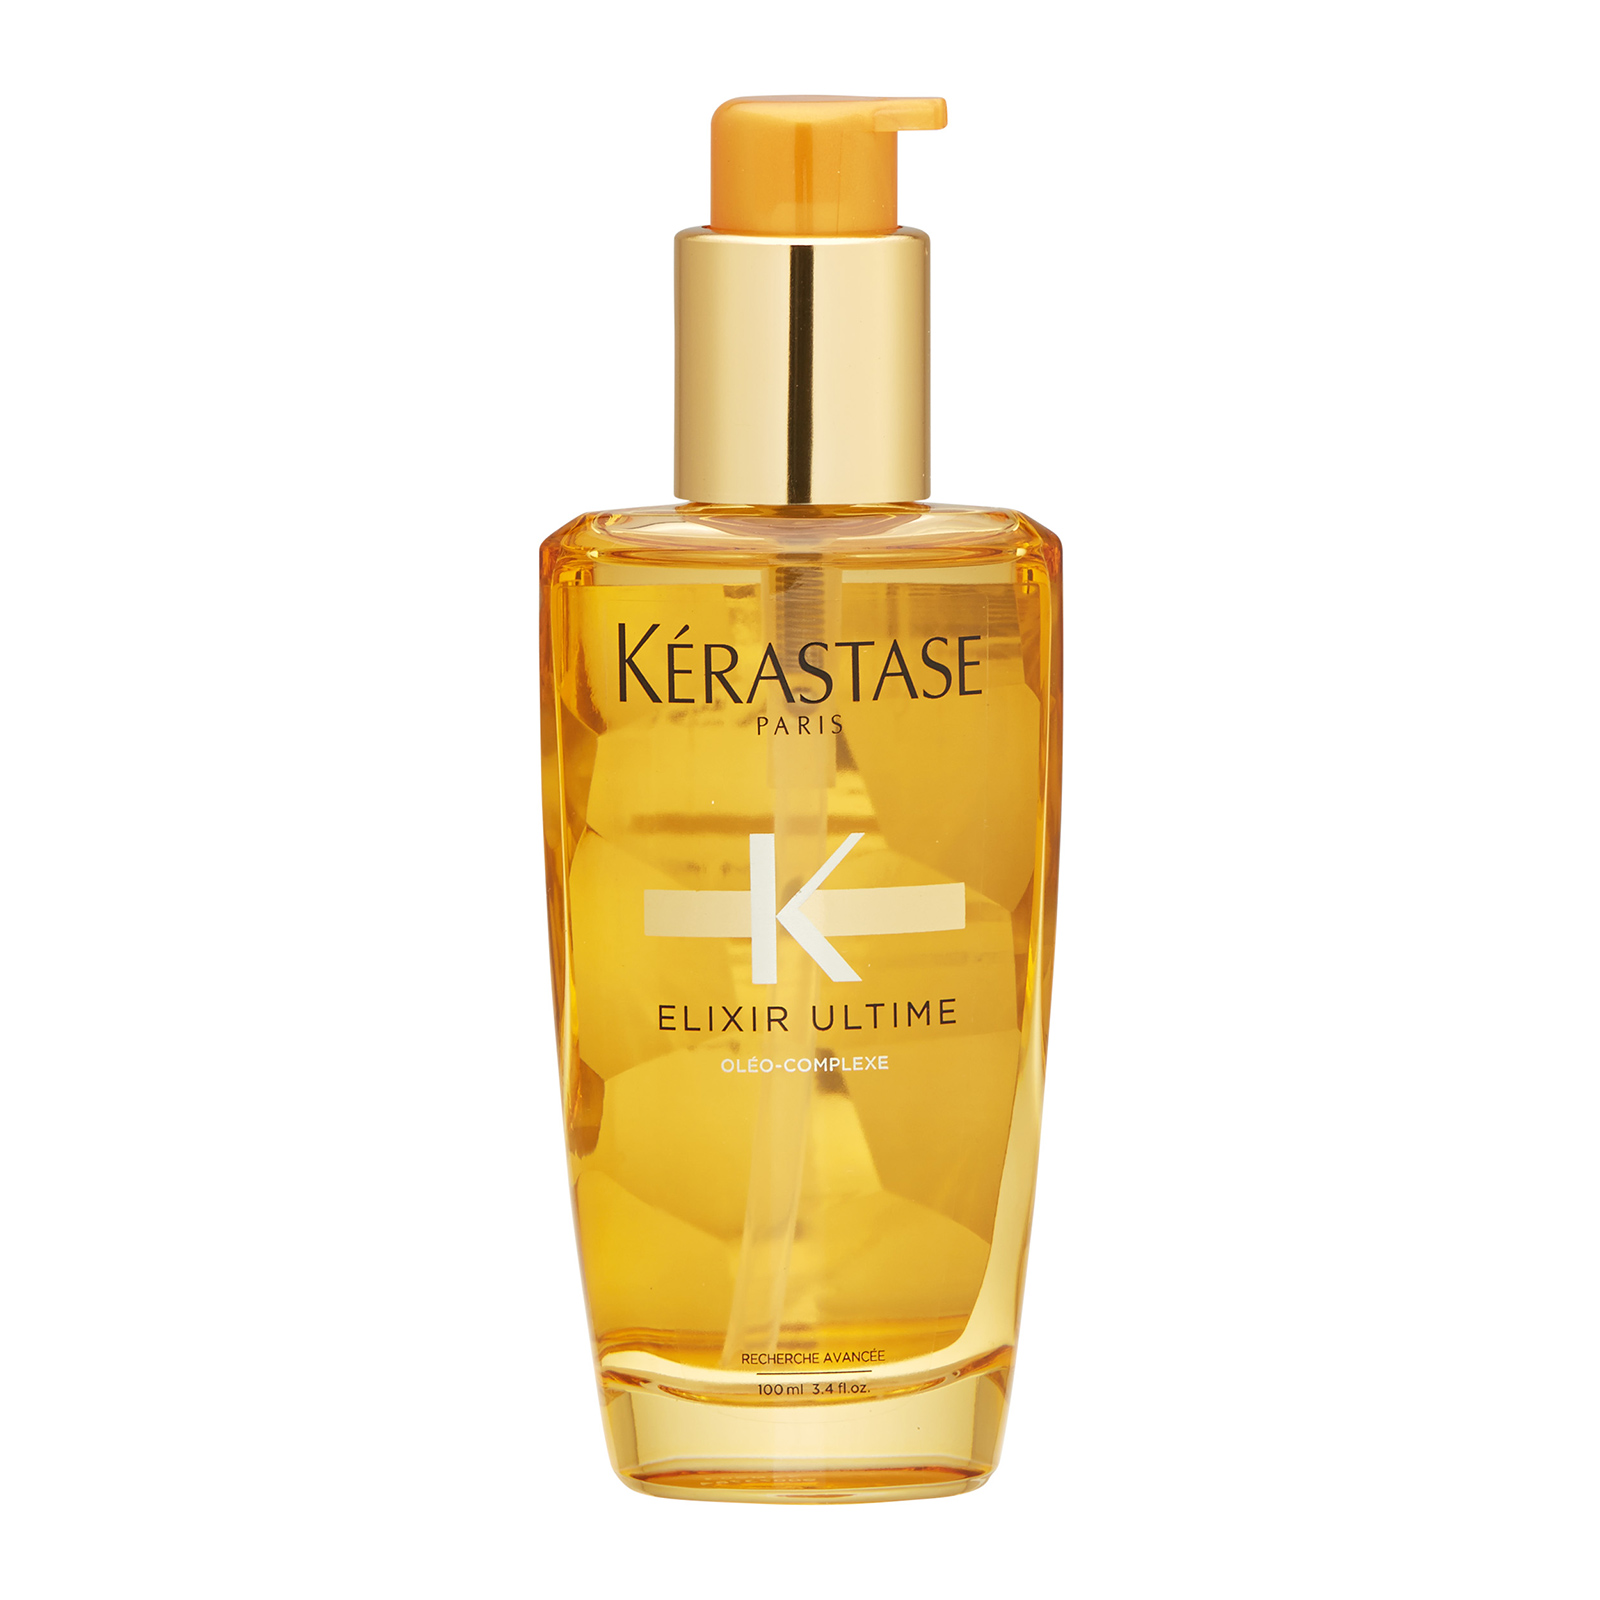 Kérastase Elixir Ultime Hair Oil, $58